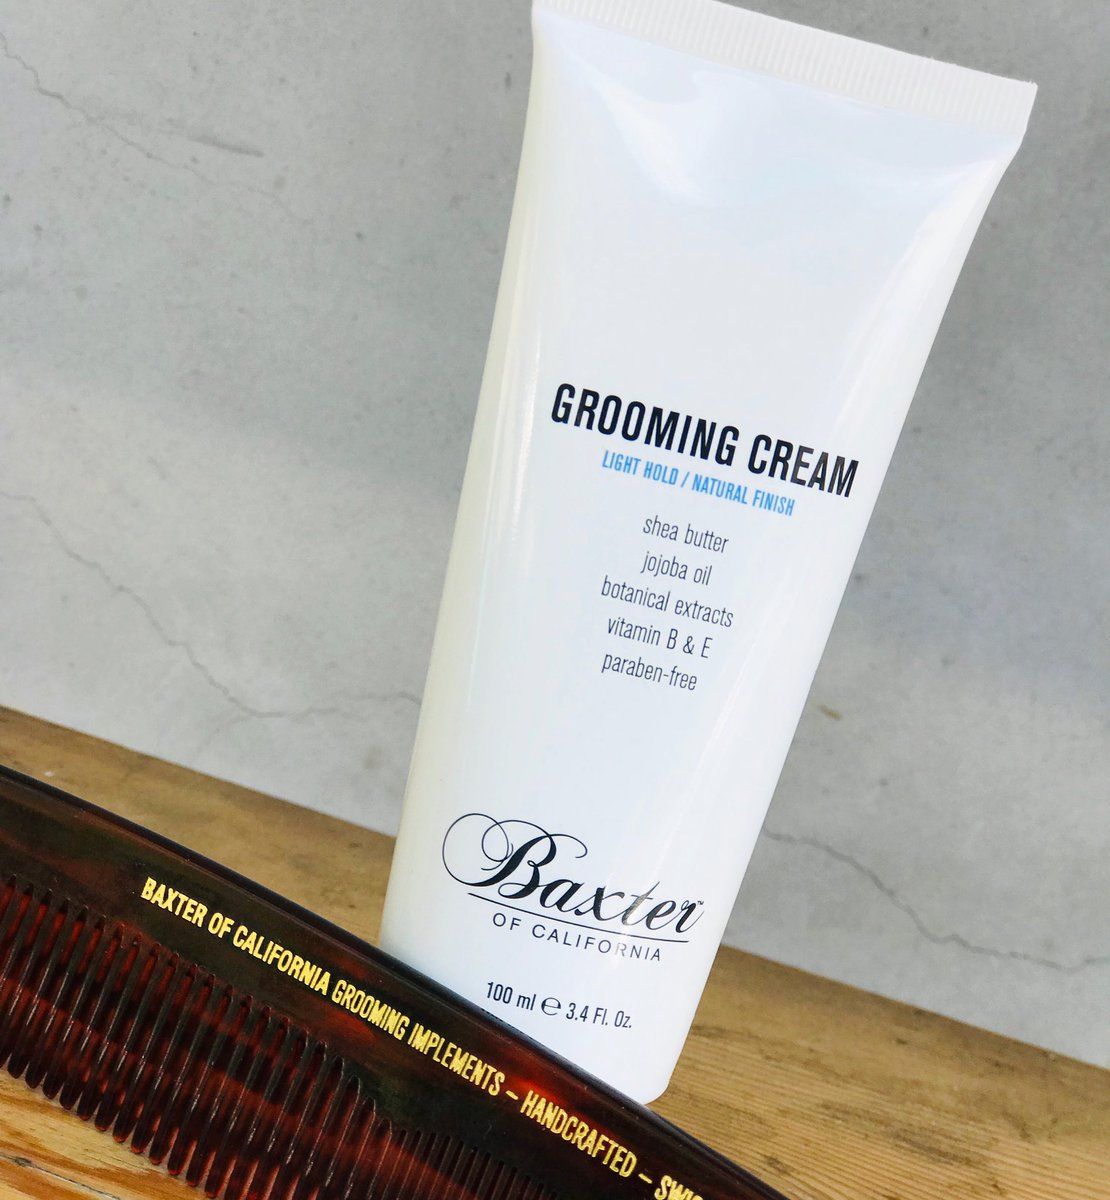 While out at #Coachella this weekend it's vital to be cautious of the hot temp when considering which hairstyles to rock. Now, we know you don't want sweaty/oily hair so use our weightless Grooming Cream for soft shine, easy styling, and moisture. https://t.co/dvBafZ8IFa